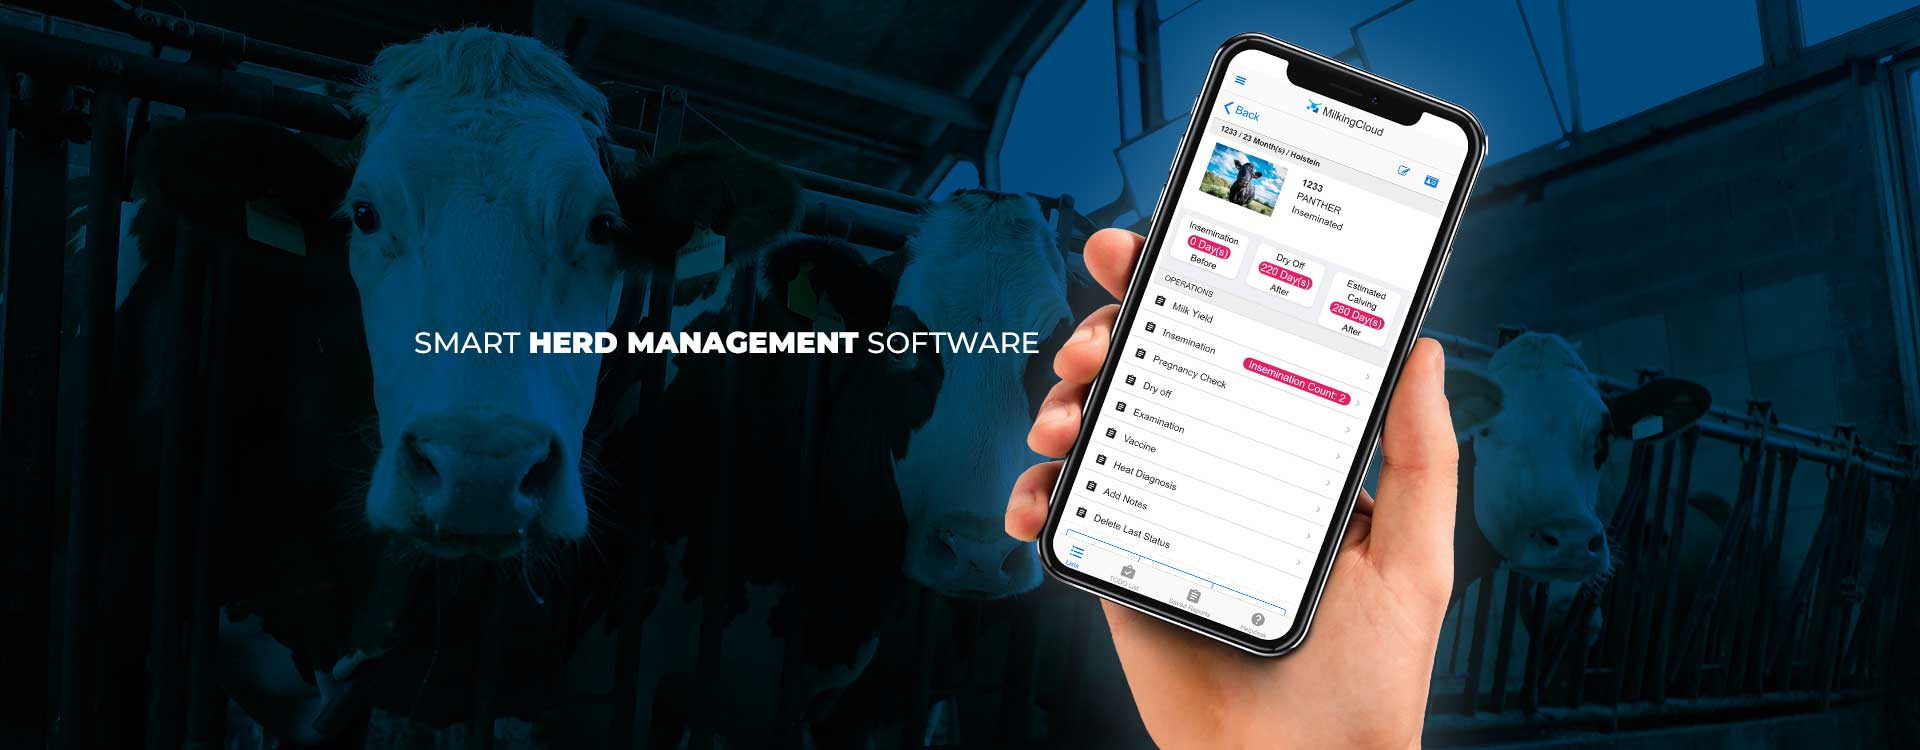 AN EASY-TO-USE HERD MANAGEMENT SOFTWARE FOR FARMS OF ANY SIZE